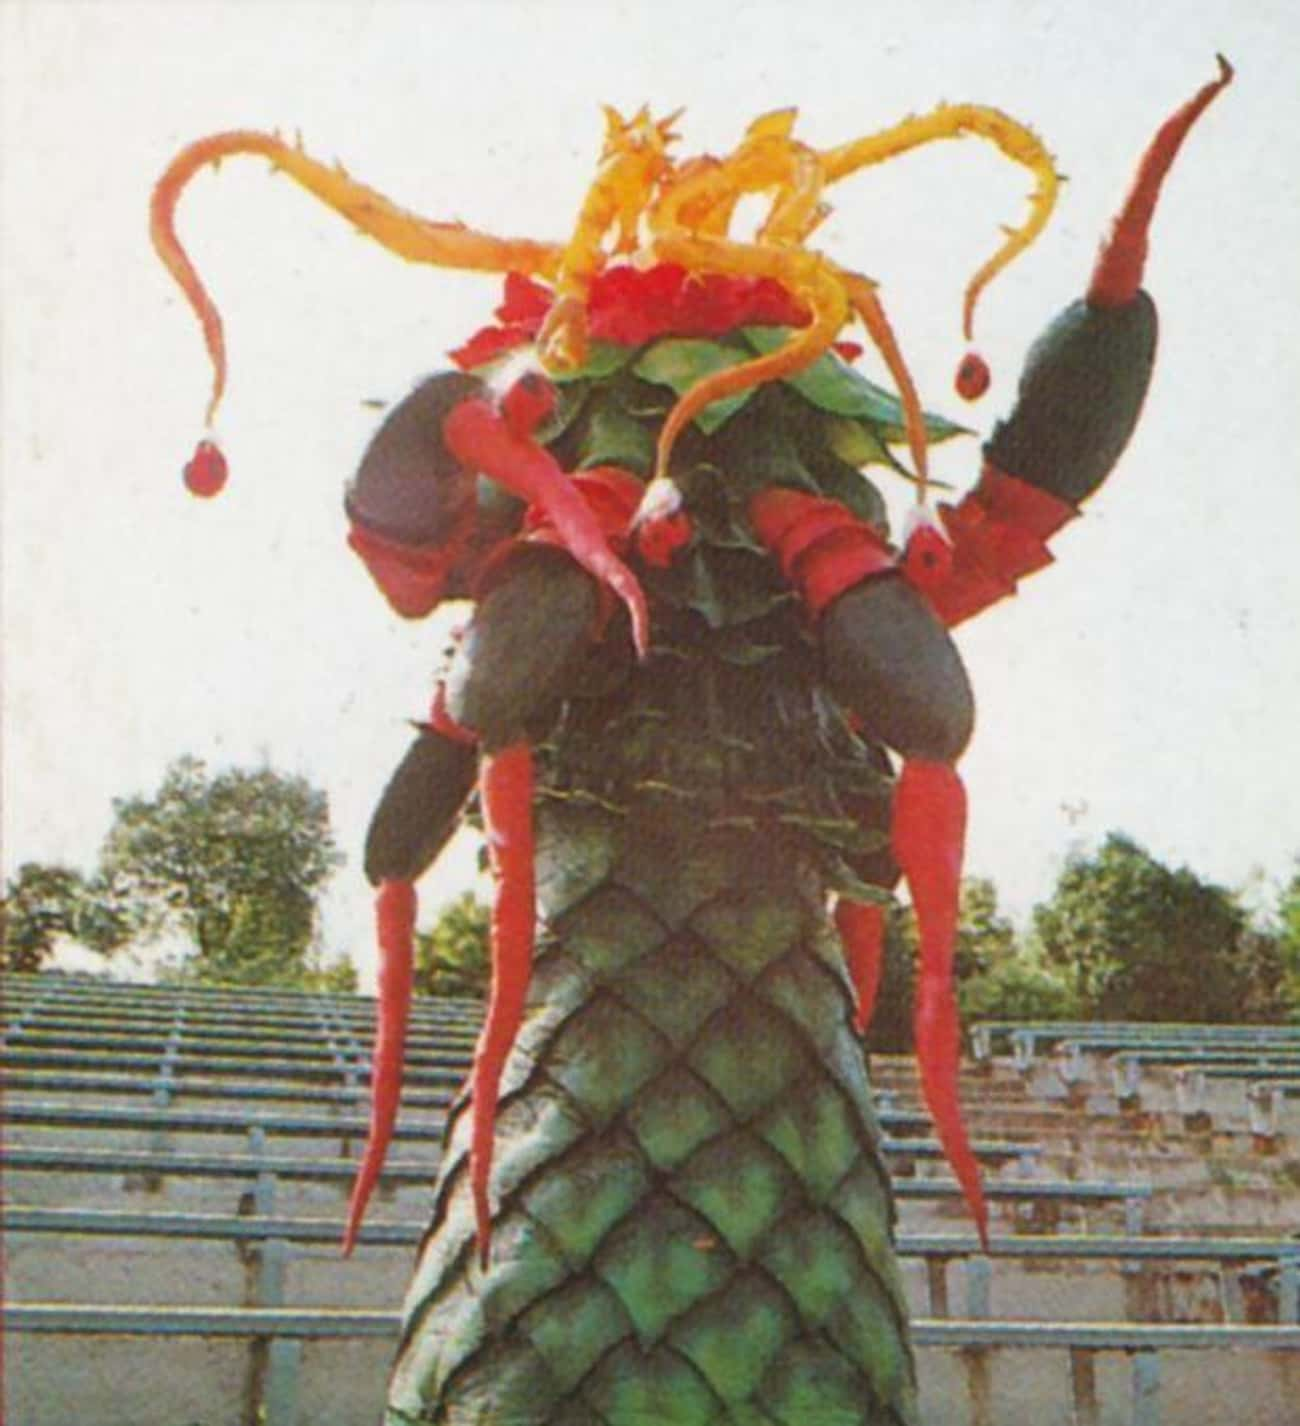 Pineoctopus is listed (or ranked) 4 on the list The 25 Worst Power Rangers Monsters That Were Too '90s For Words